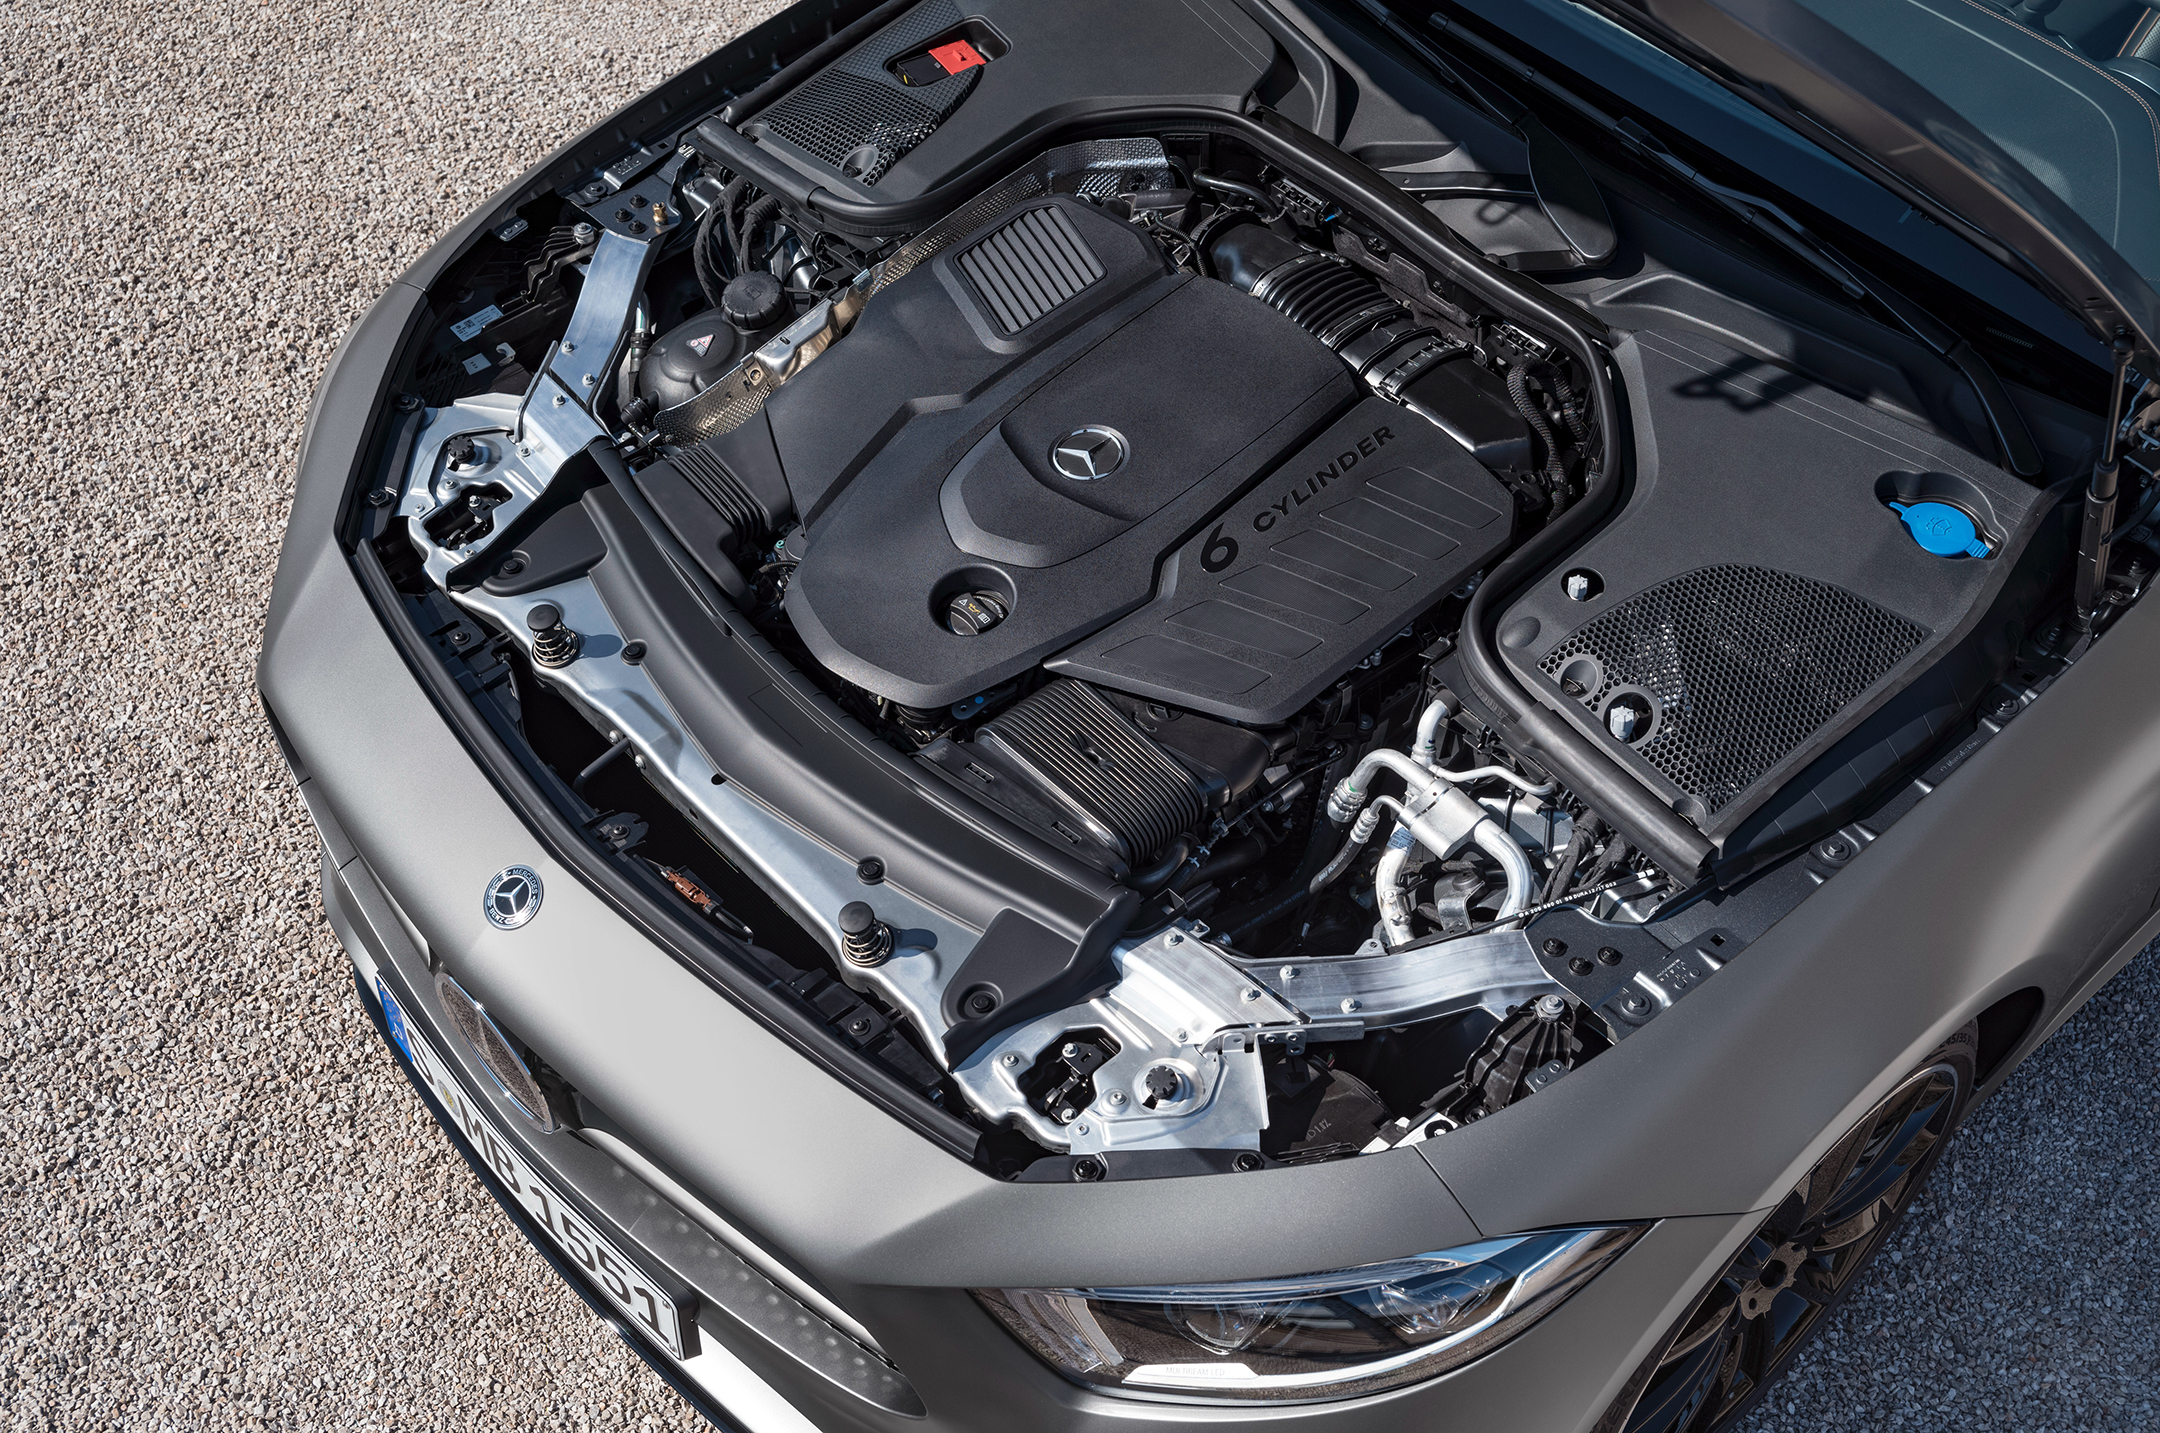 Mercedes-Benz CLS 450 AMG Line - Edition 1 (C257) - 2018 - Under the hood